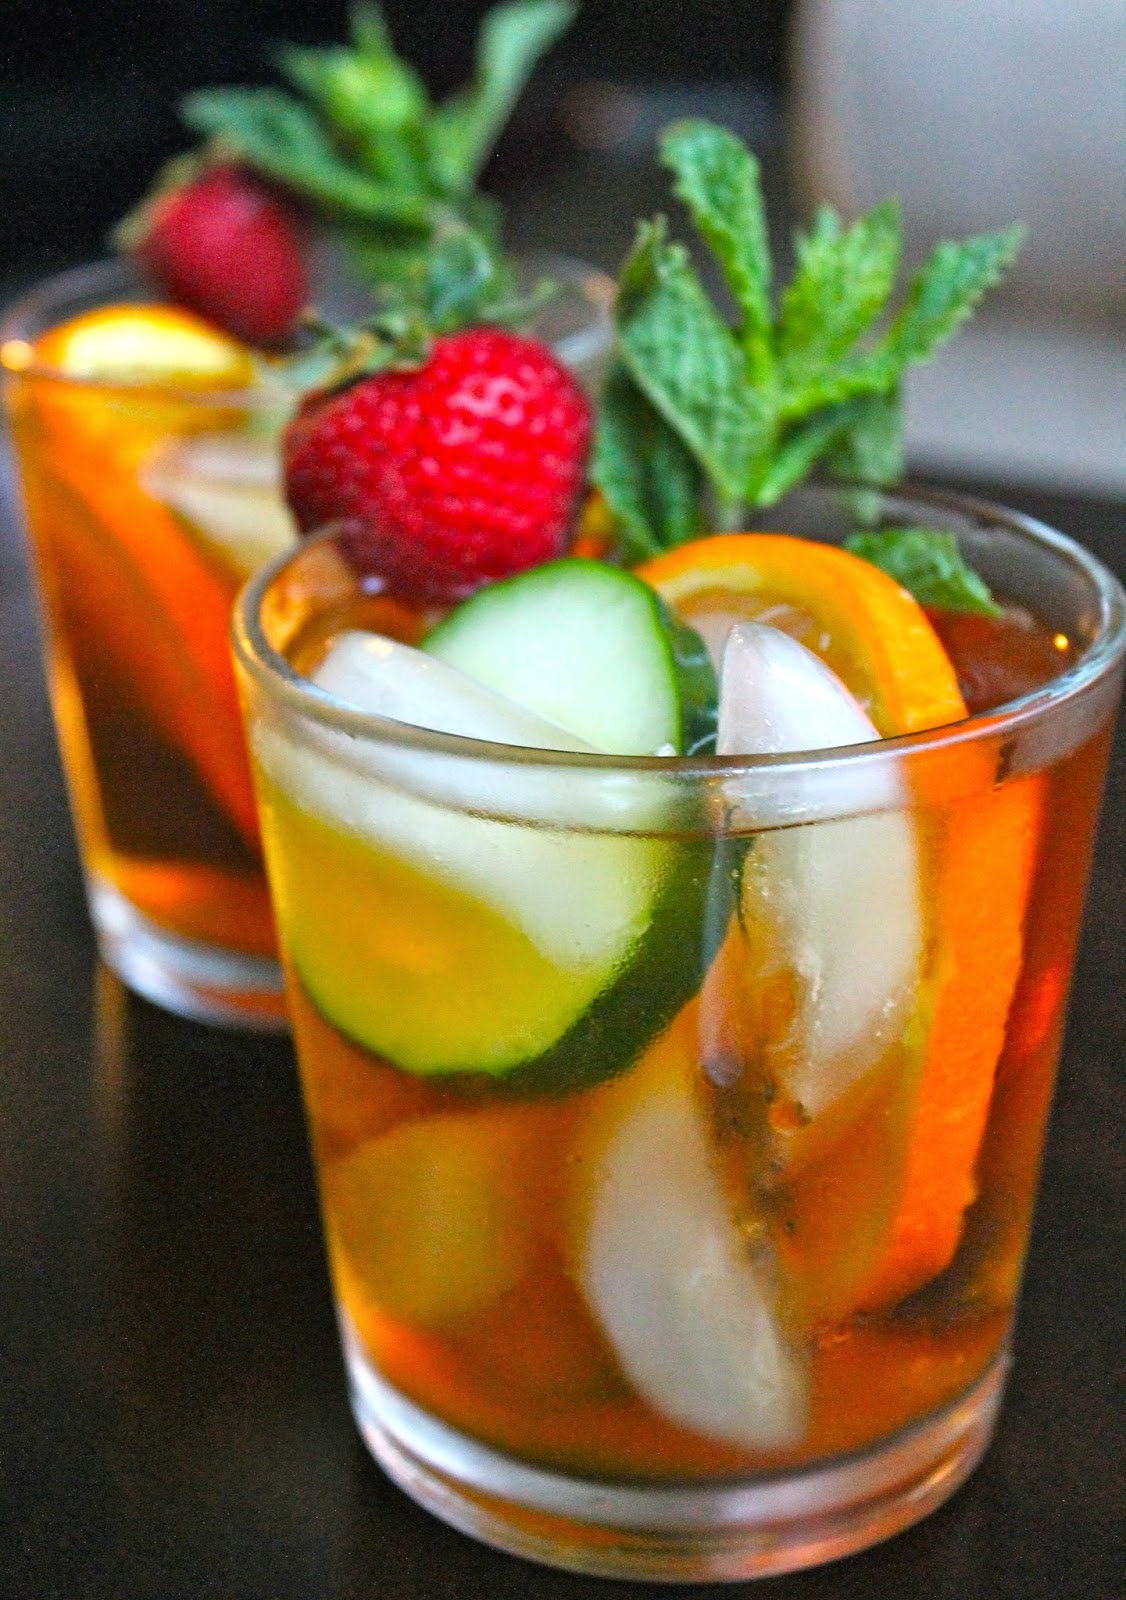 The Cultural Dish: Pimm's Cup